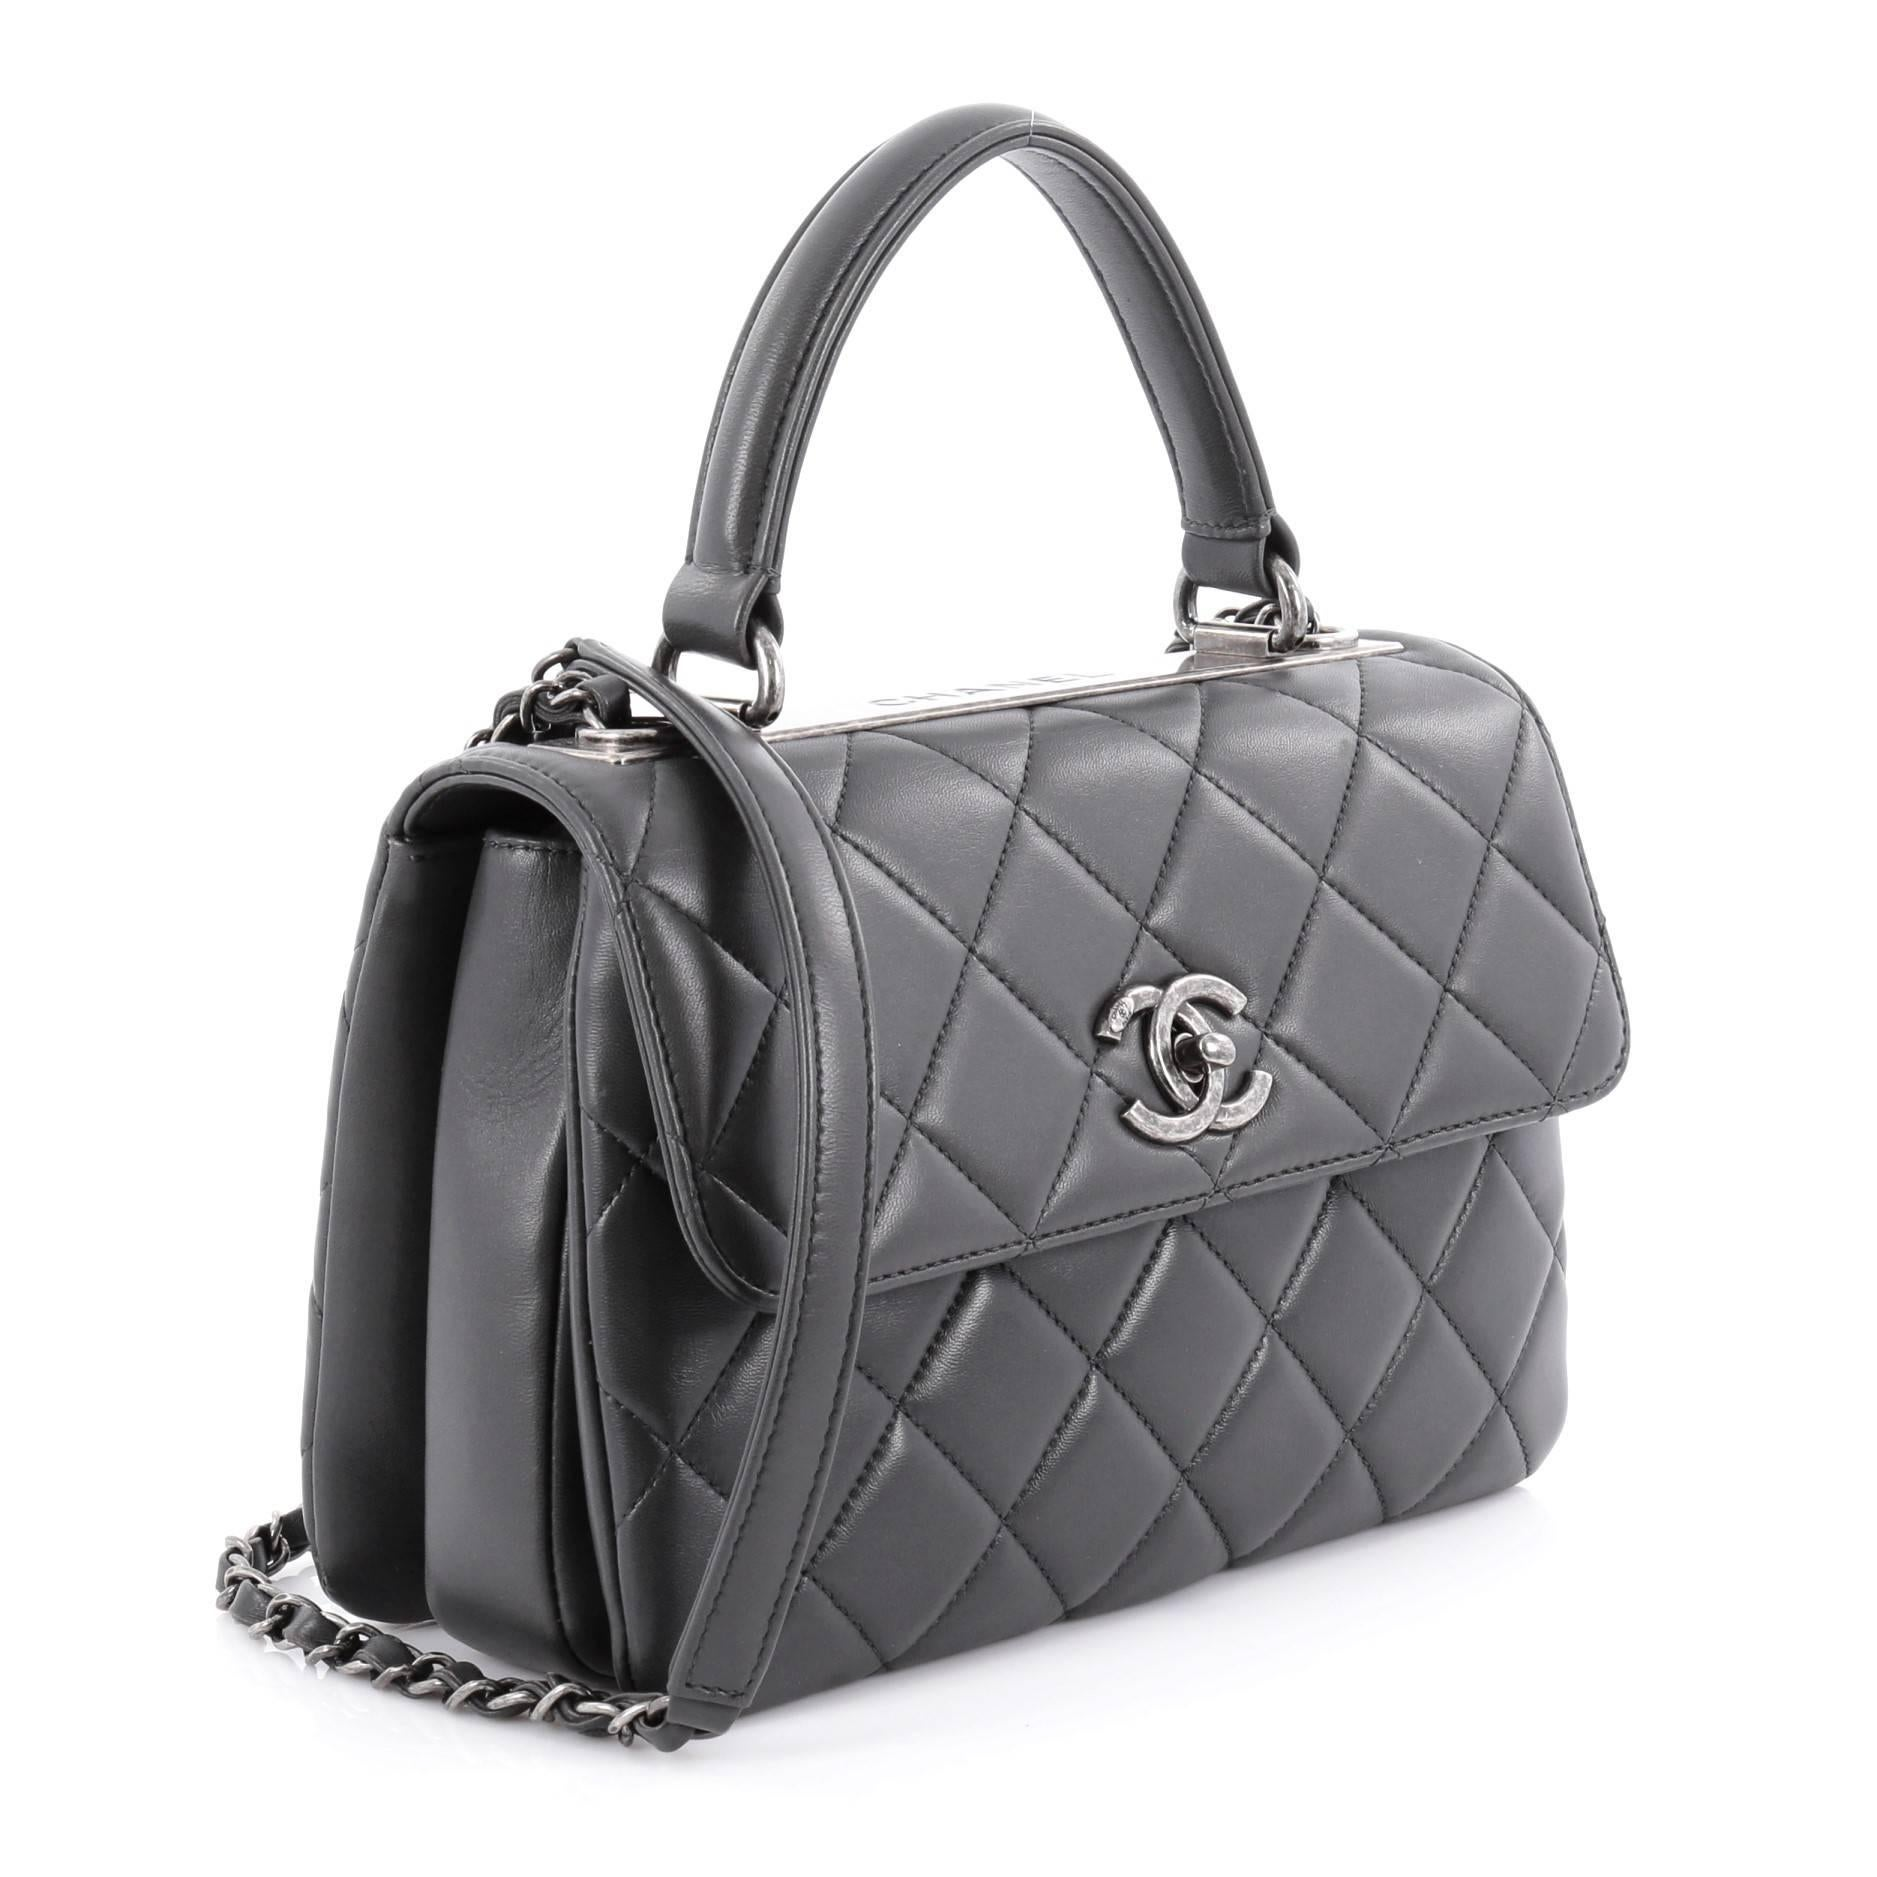 406df33a2f4b Chanel Trendy CC Top Handle Bag Quilted Lambskin Small at 1stdibs